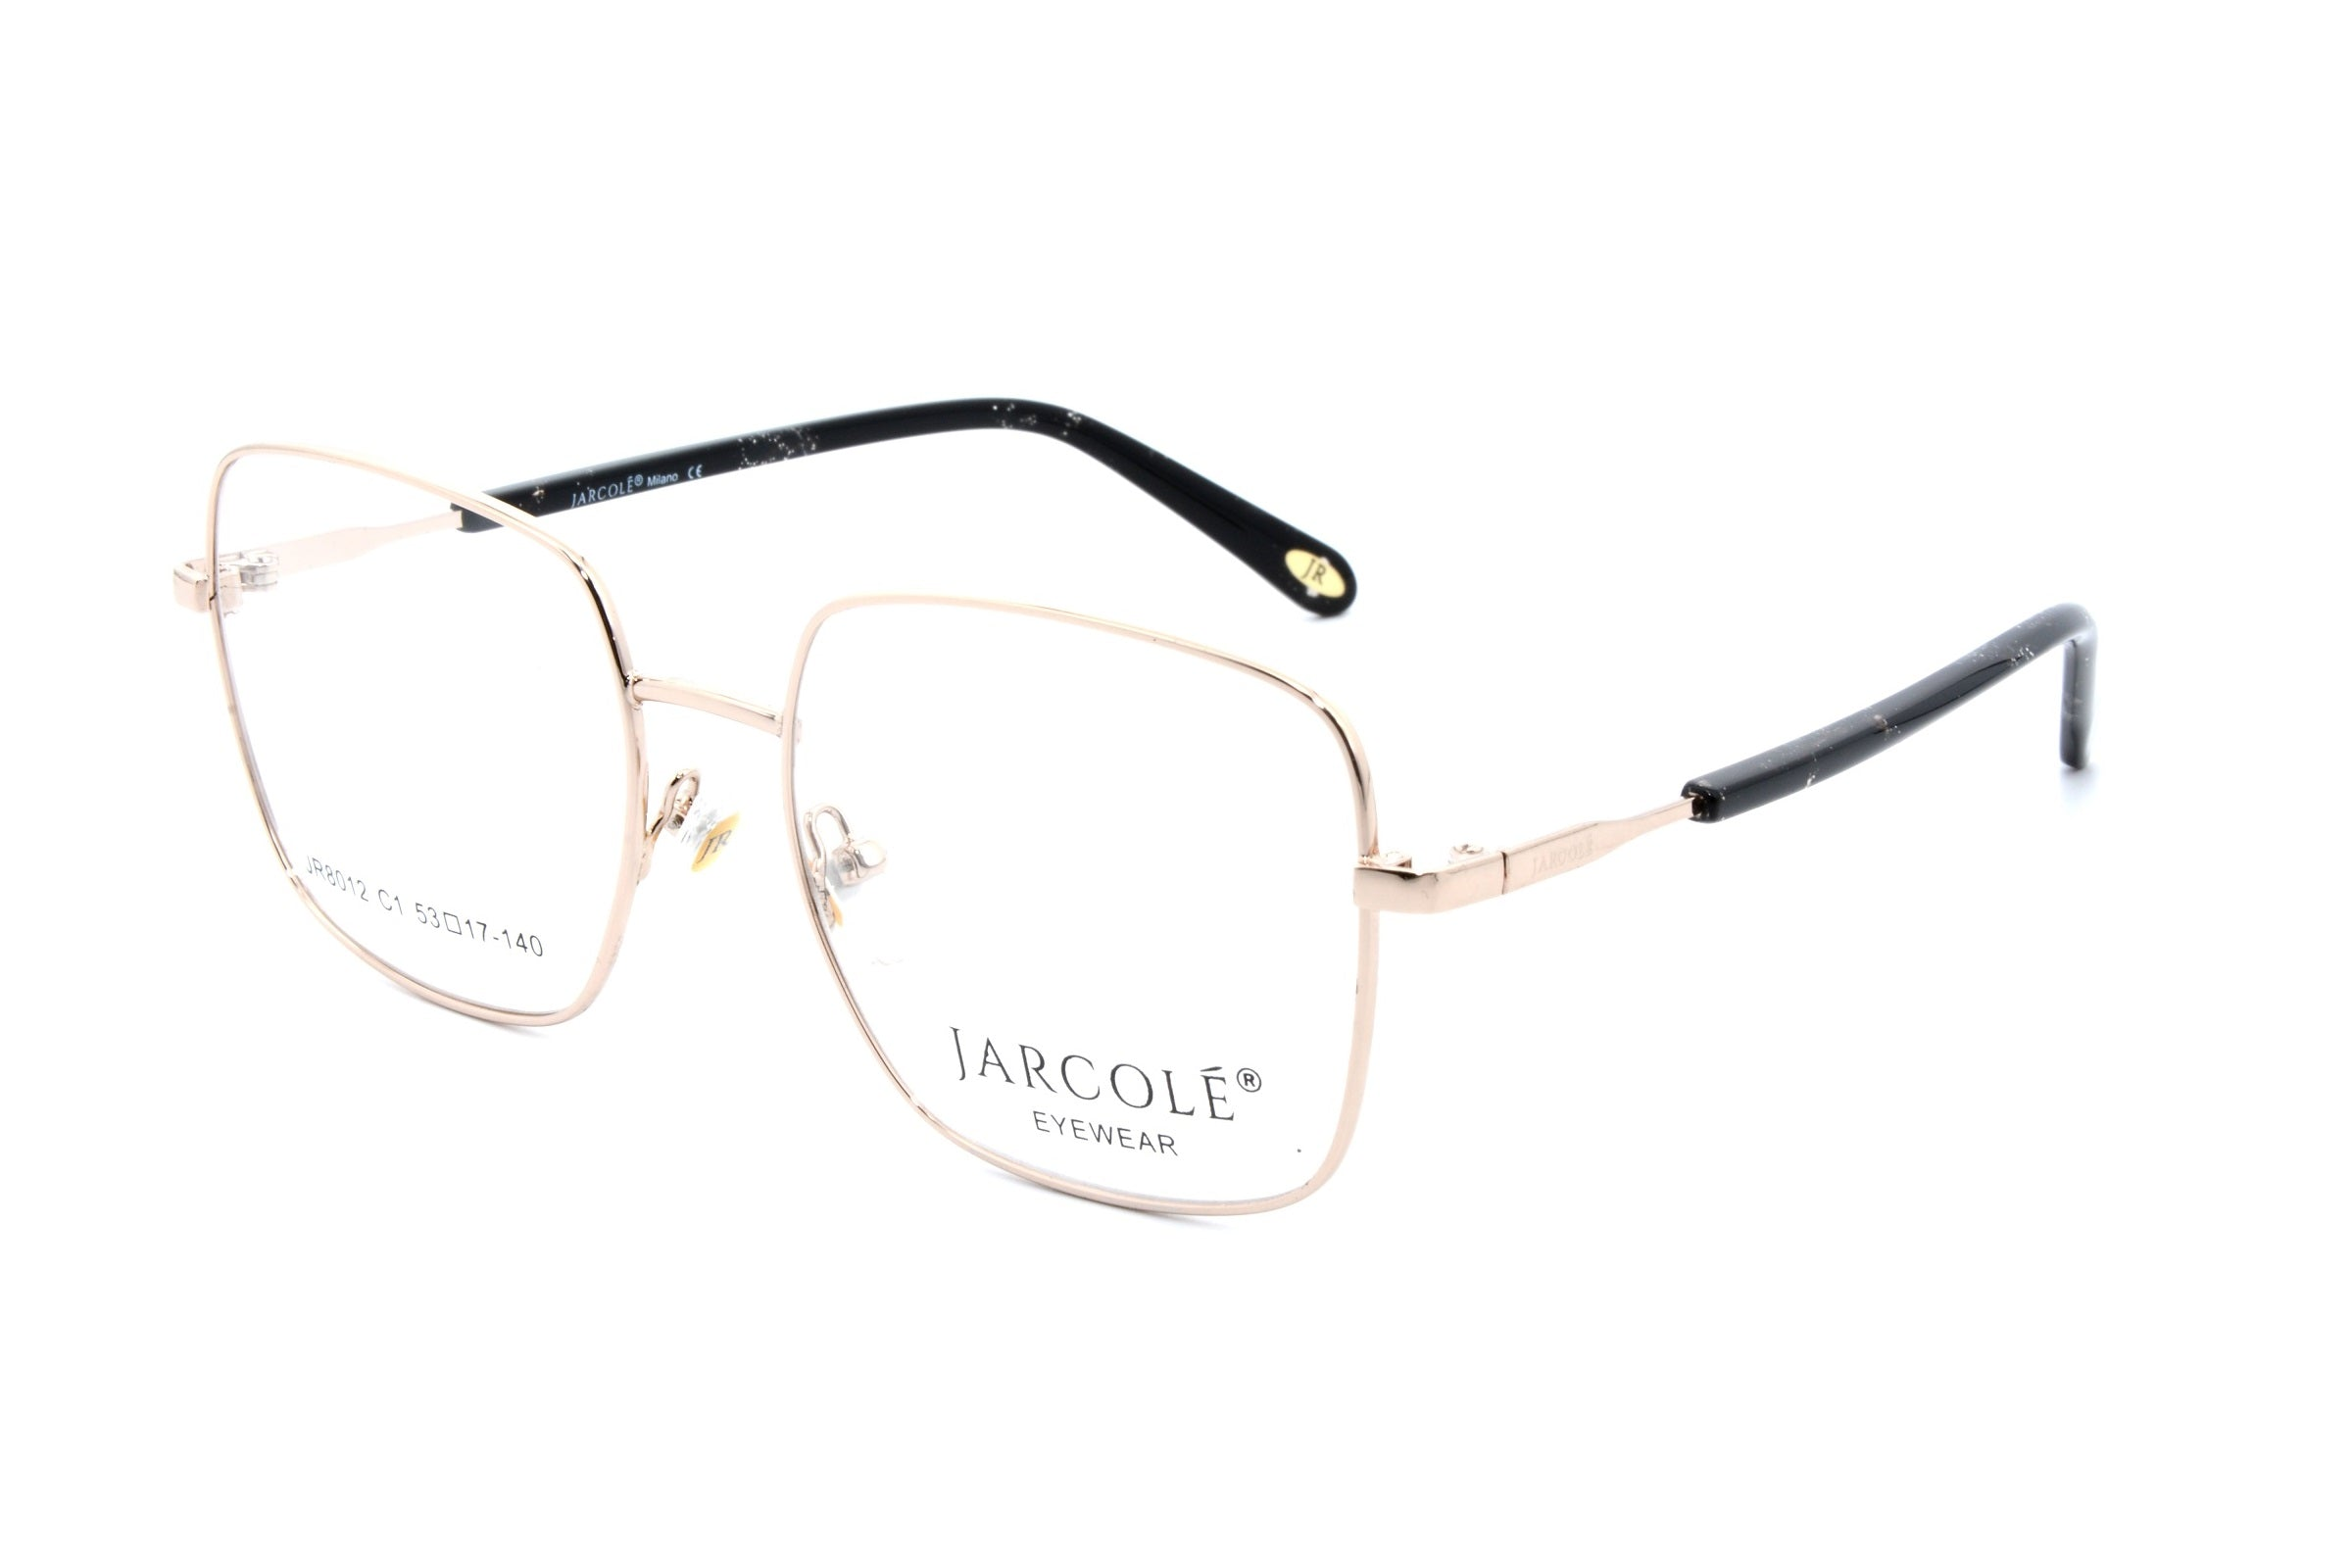 Jarcole eyewear 8012, C1 - Optics Trading